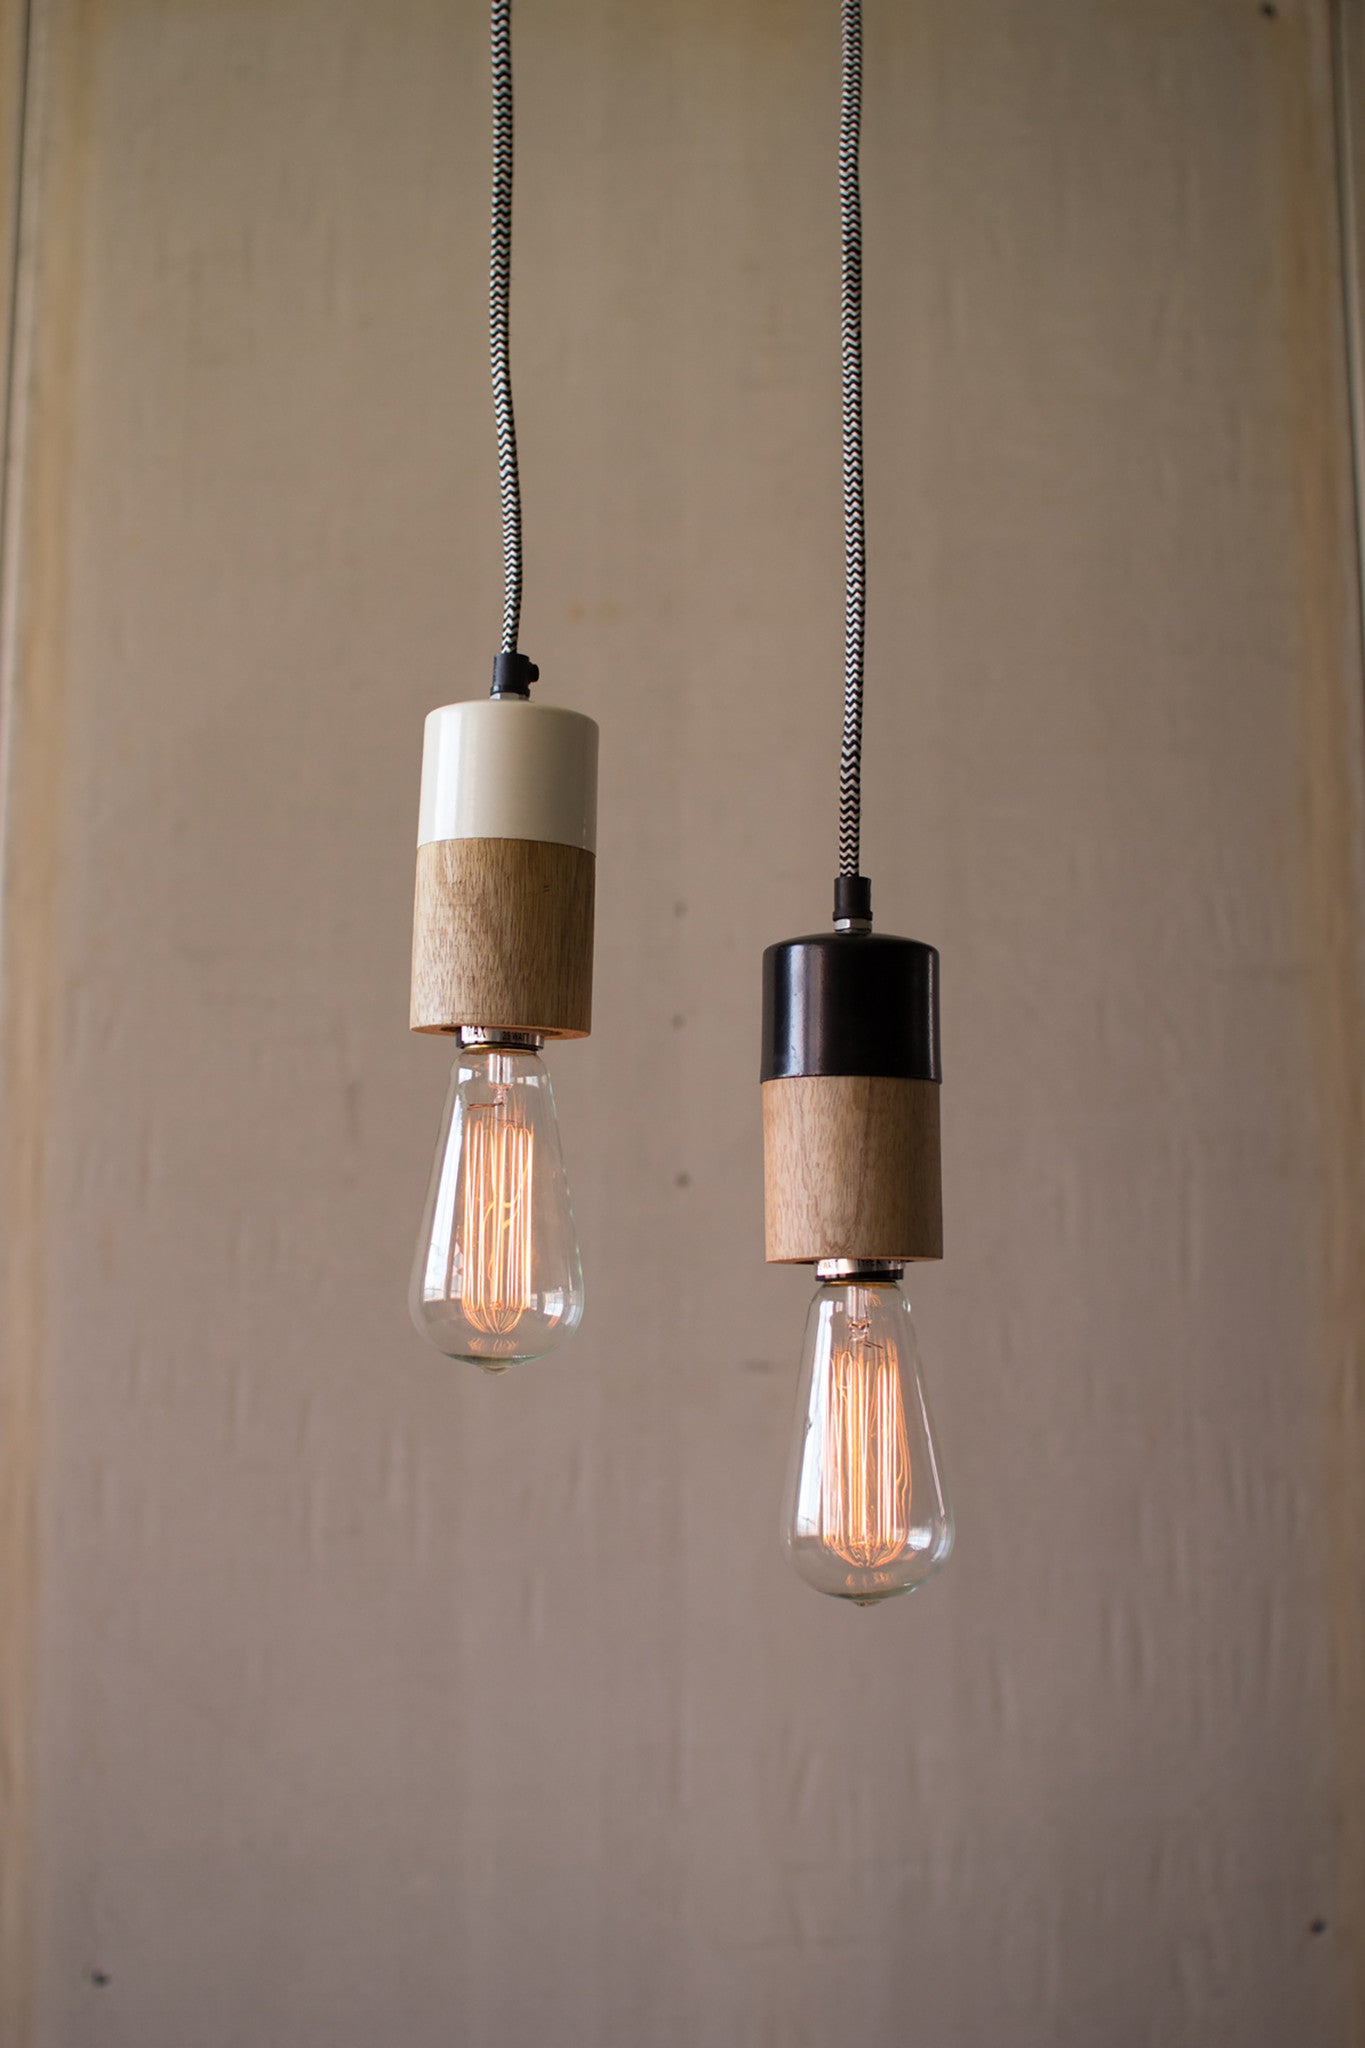 Natural Wood and Metal Pendant Lamp With Black Accent